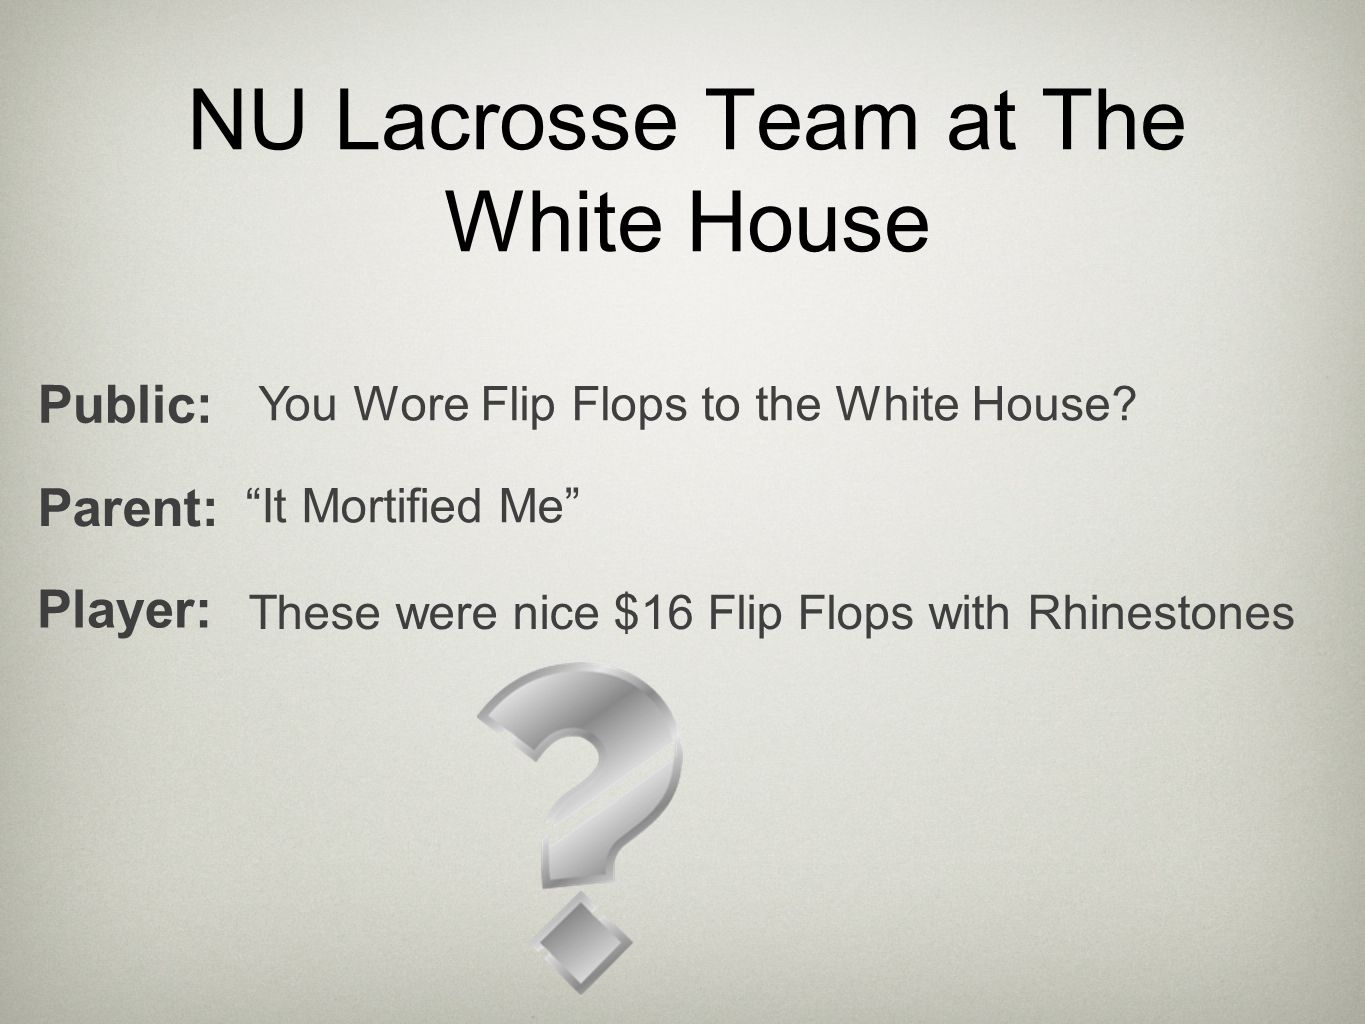 "NU Lacrosse Team at The White House You Wore Flip Flops to the White House? Public: These were nice $16 Flip Flops with Rhinestones Player: Parent: ""I"